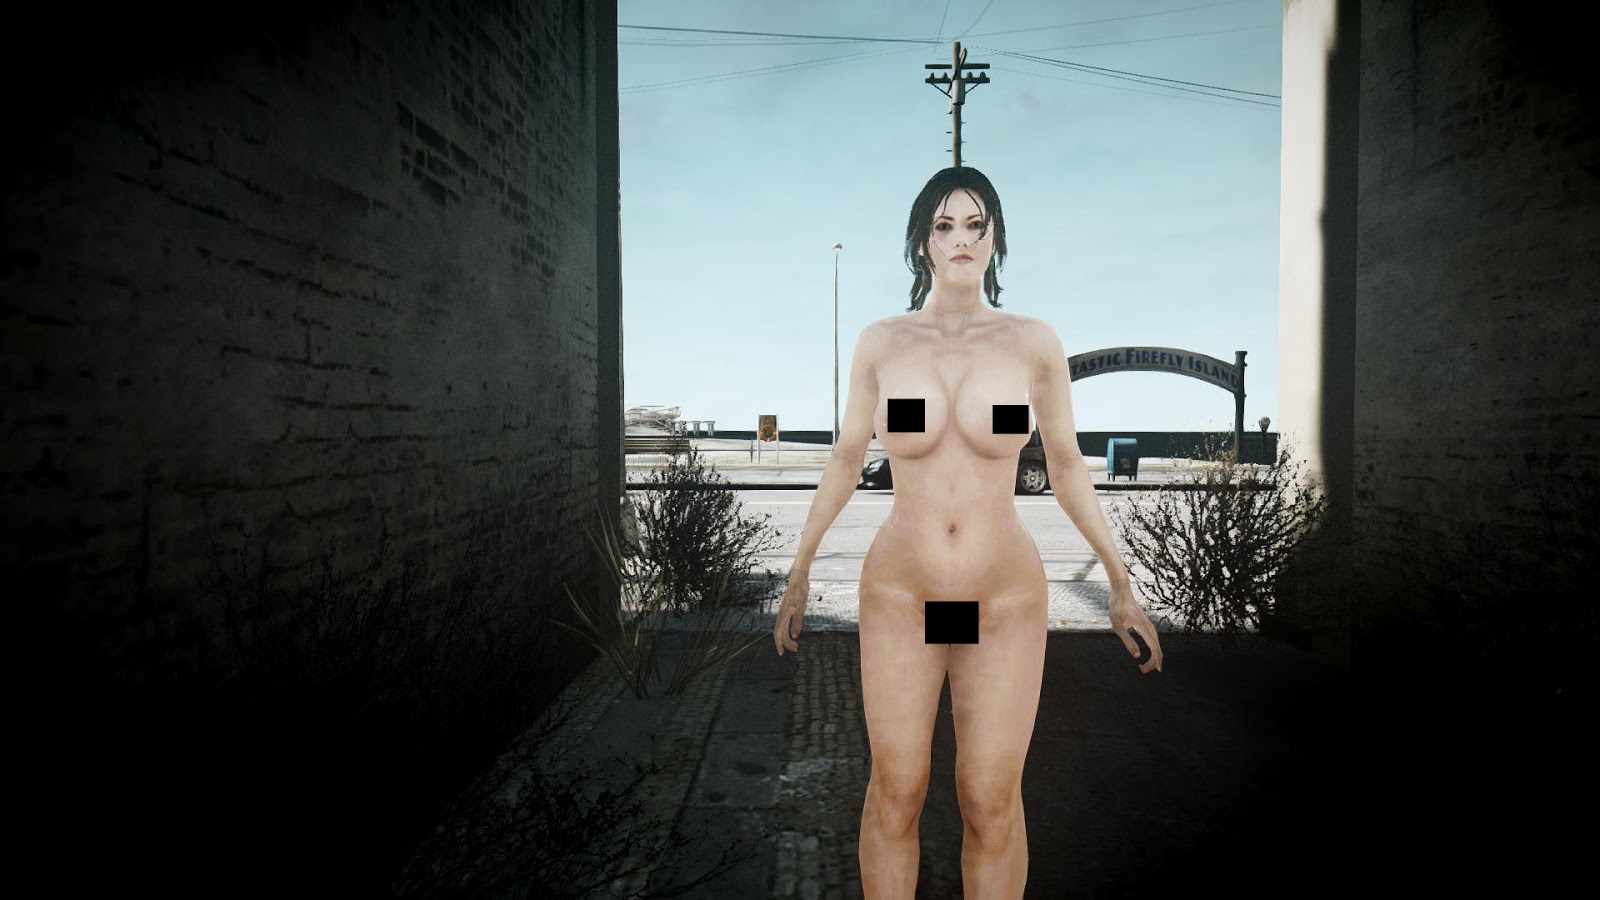 Gta4 nude boobs mod xxx photo